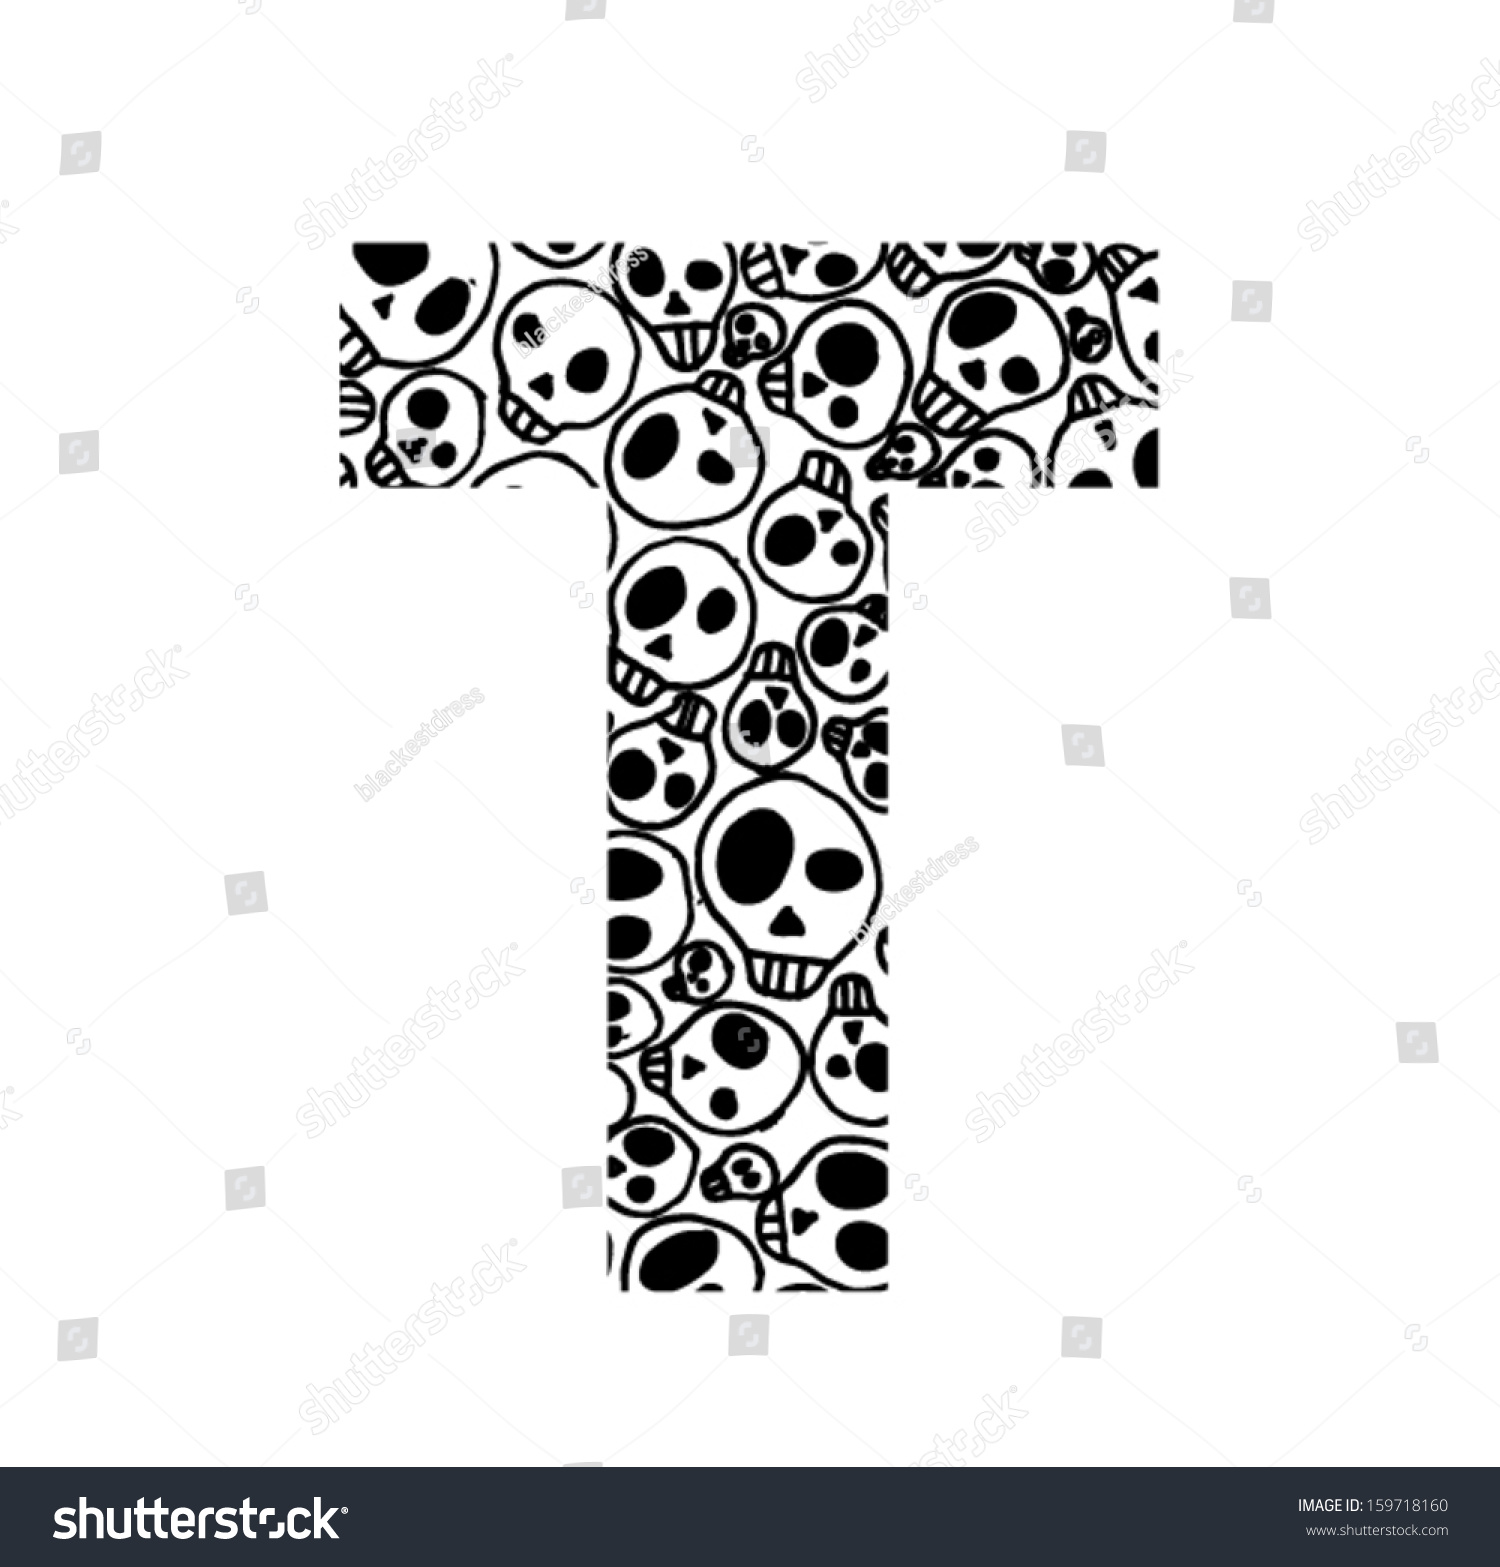 Scary Skull Font Letter T Stock Vector Royalty Free 159718160